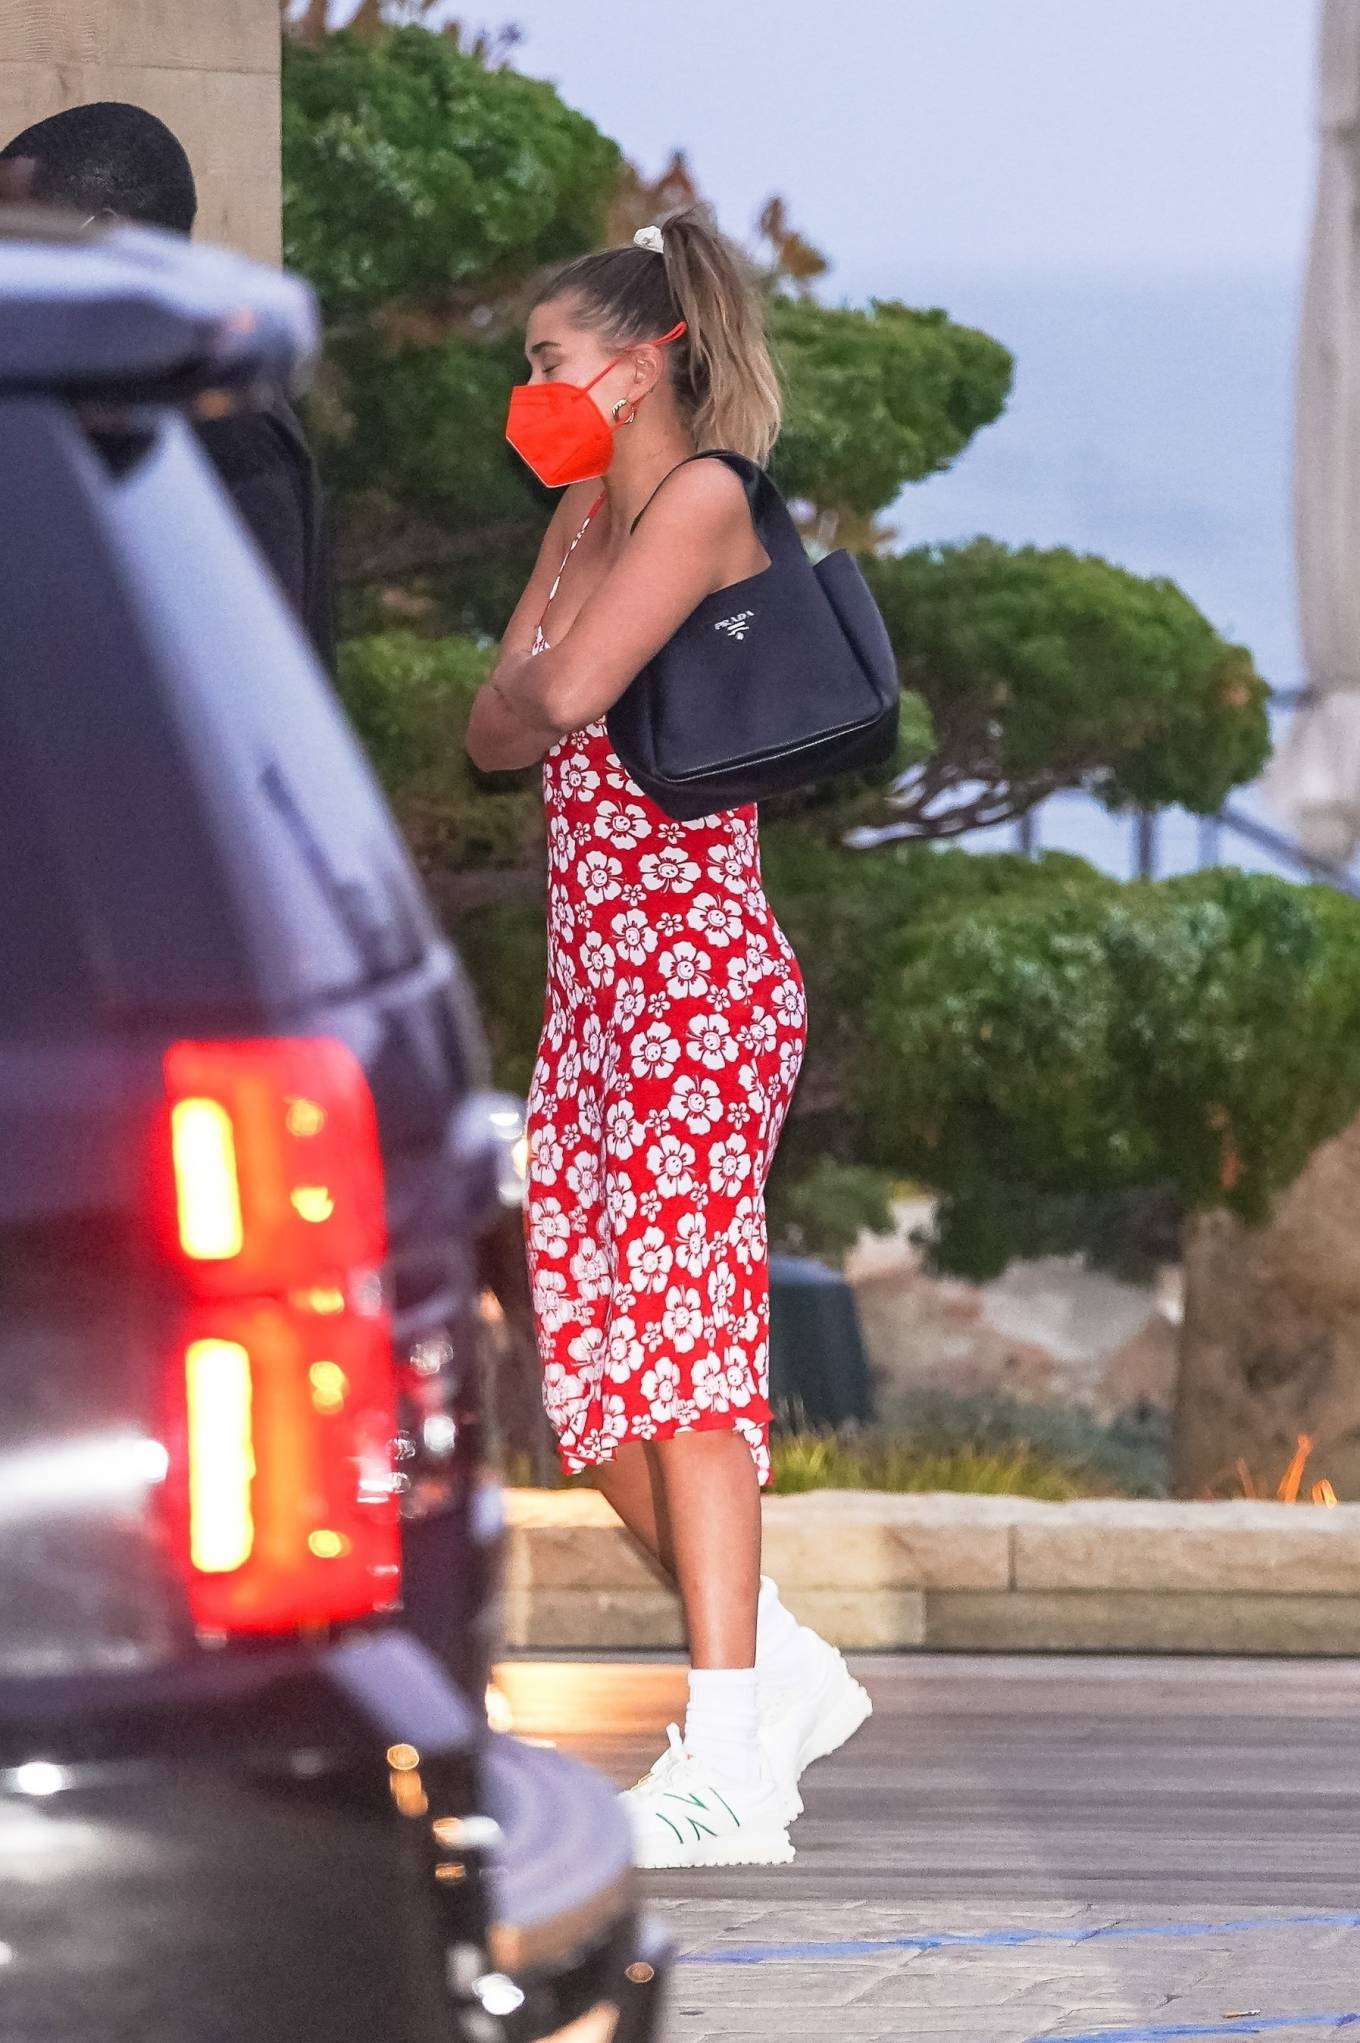 Hailey Baldwin wearing a fitted Holiday The Label dress with a viscose fabric, floral print, a scoop neck and spaghetti straps